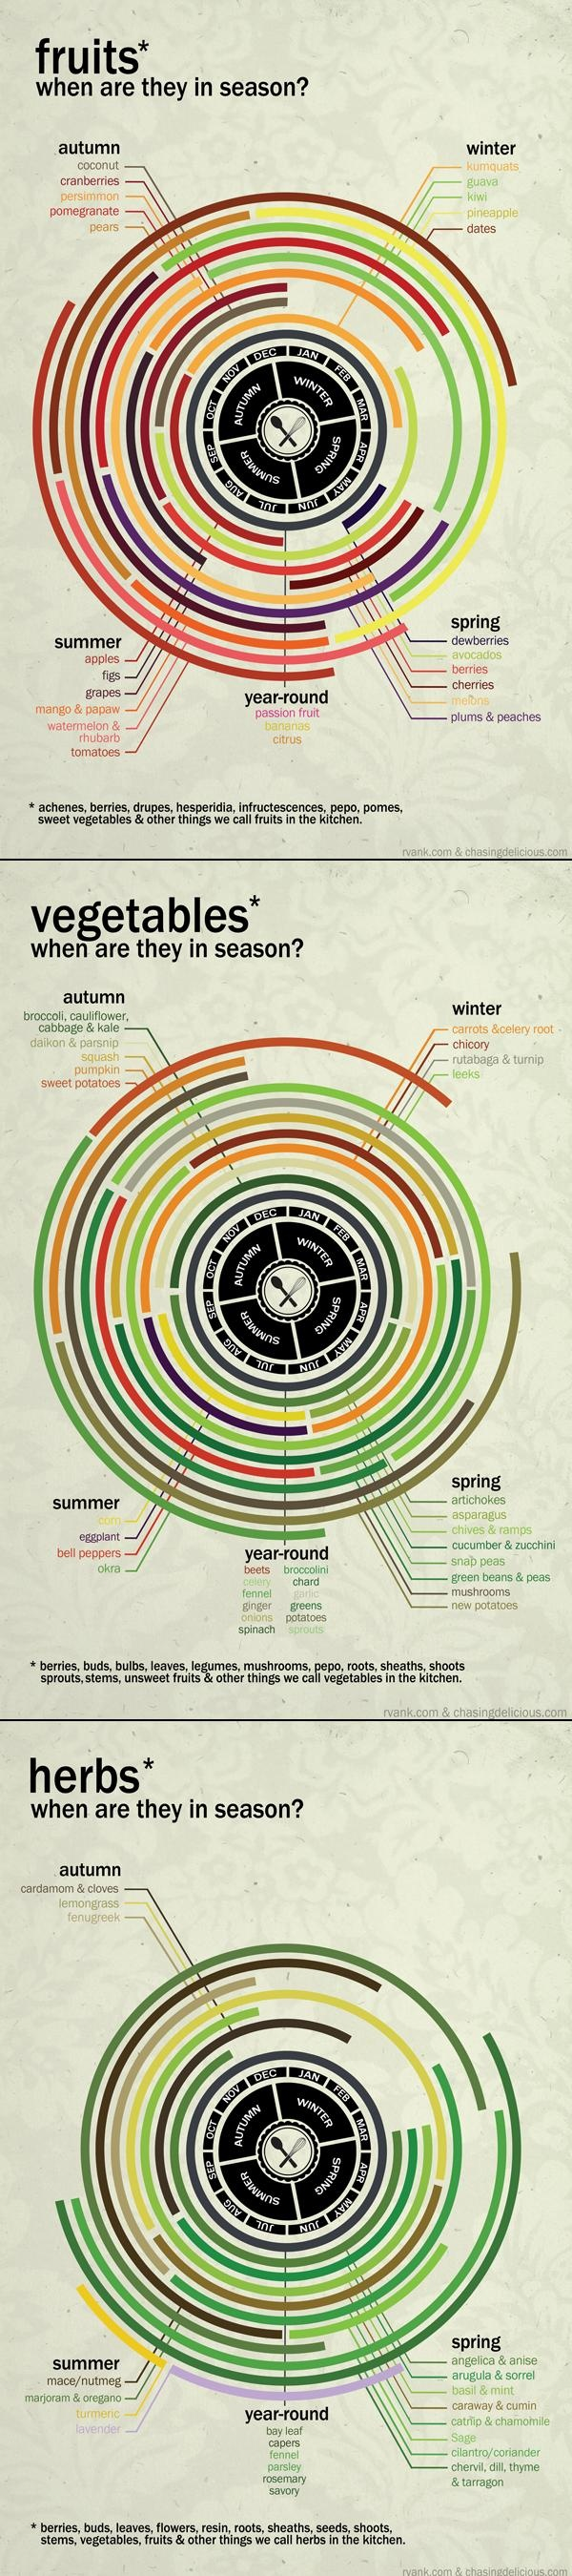 When are Fruits, Veggies and Herbs in Season?